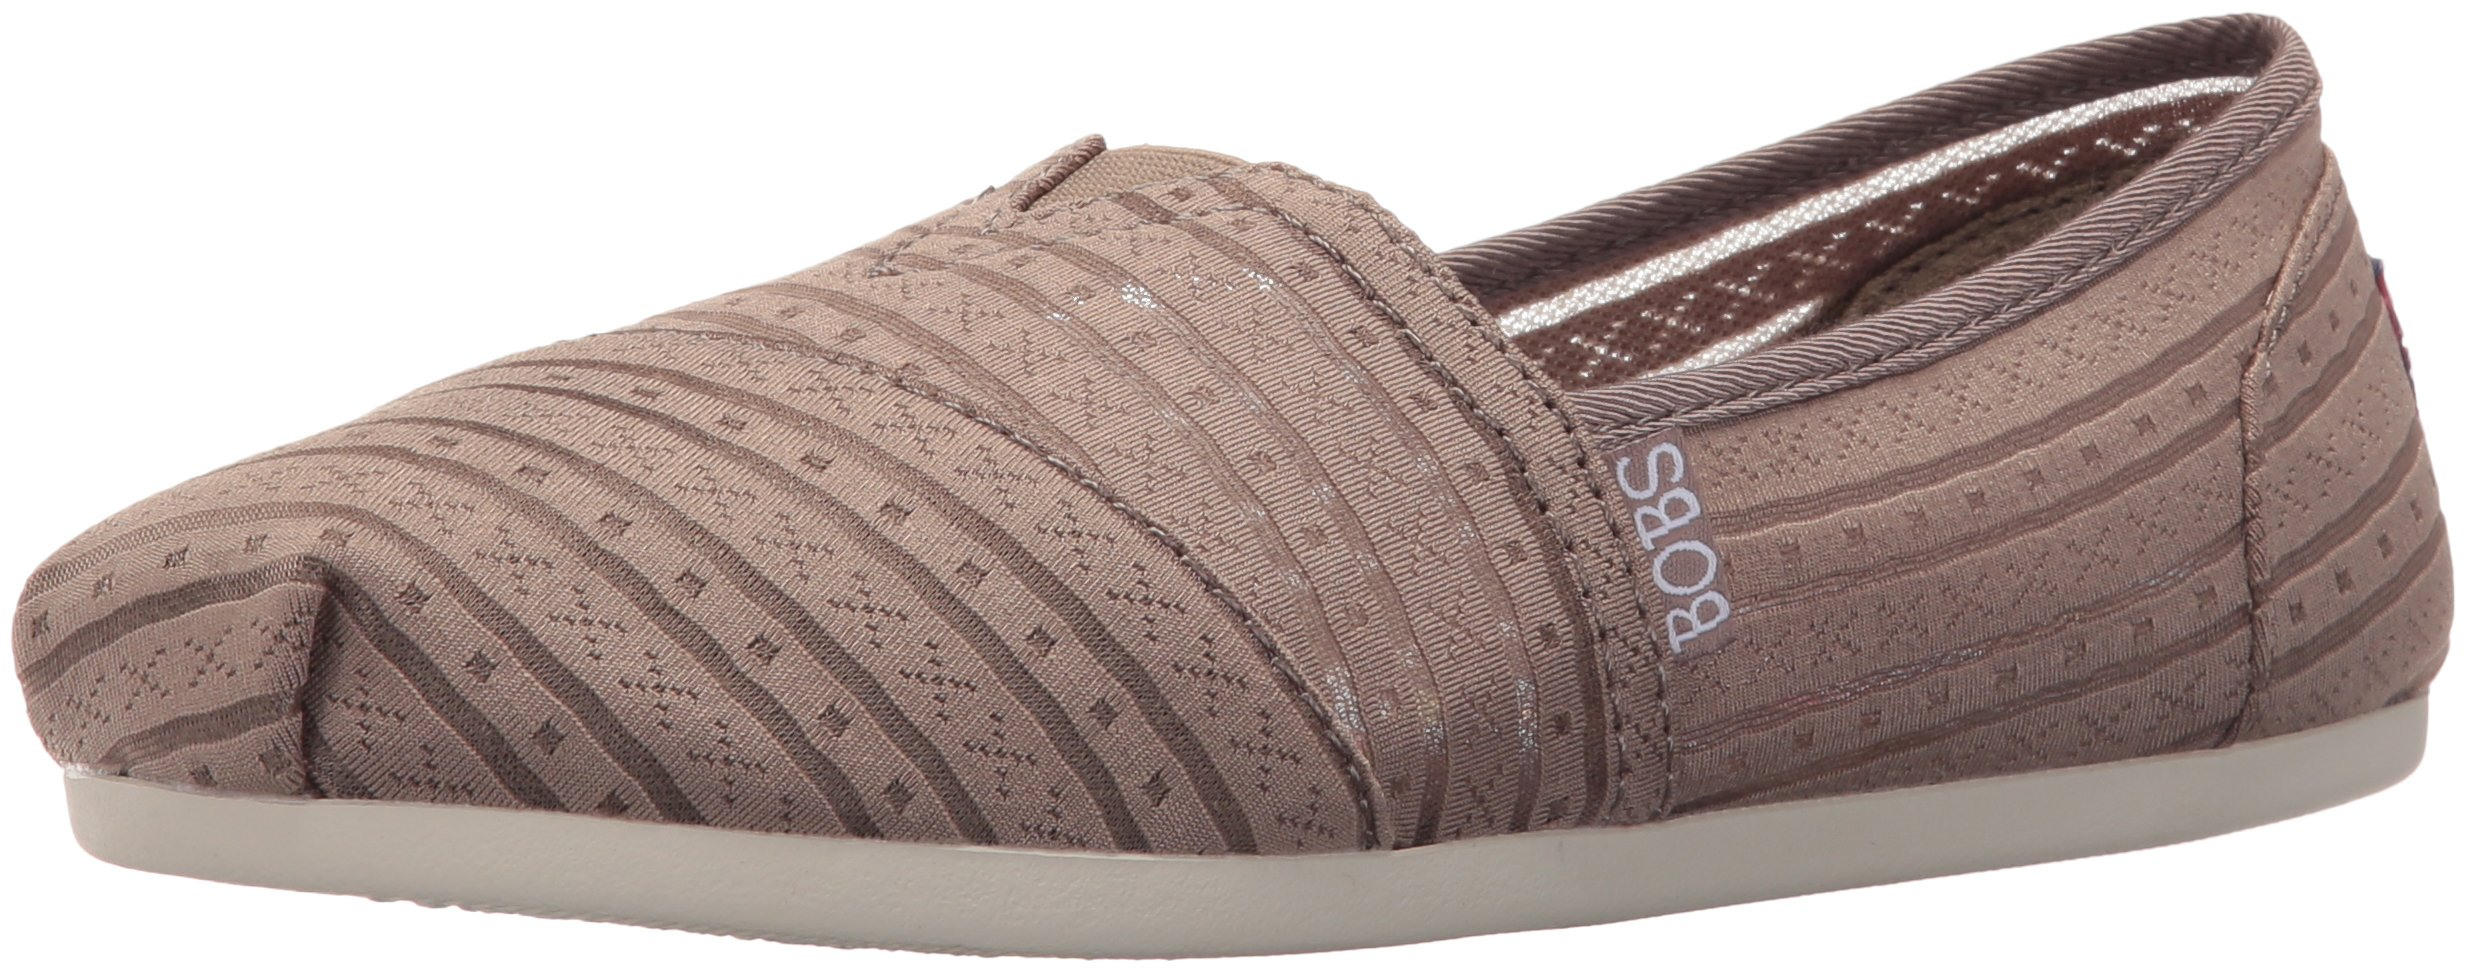 Skechers BOBS from Women's Plush-Urban Rose Flat, Urban Rose Taupe, 10 M US